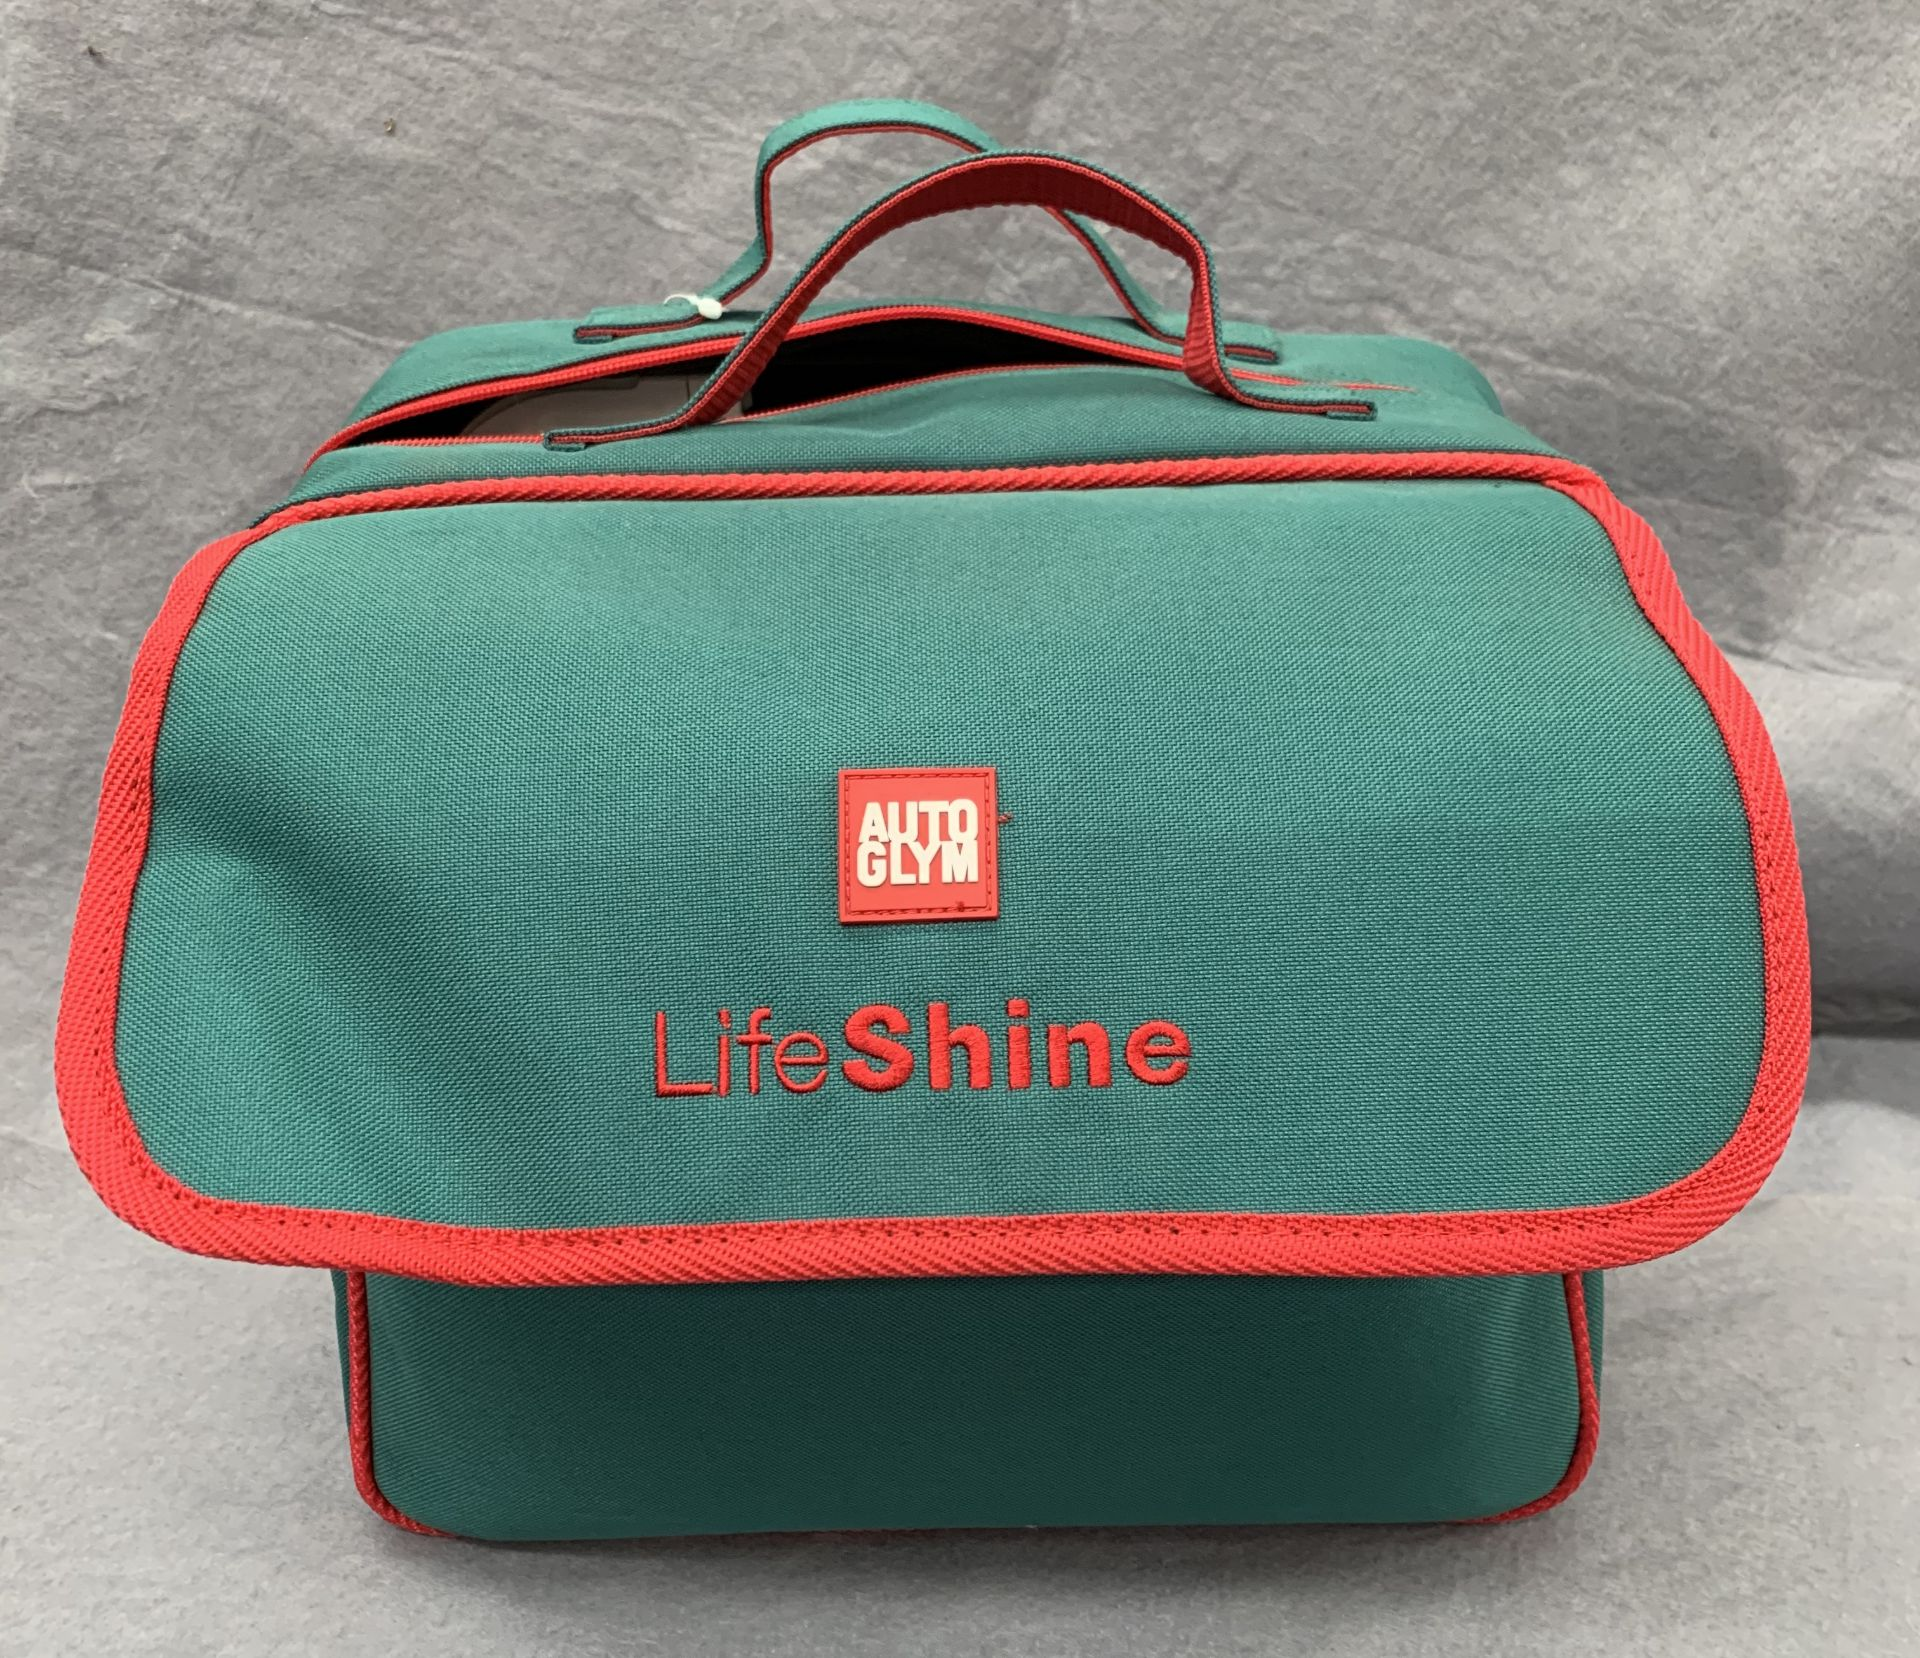 Lot 11 - An Autoglym Life Shine car protection kit in carrying case